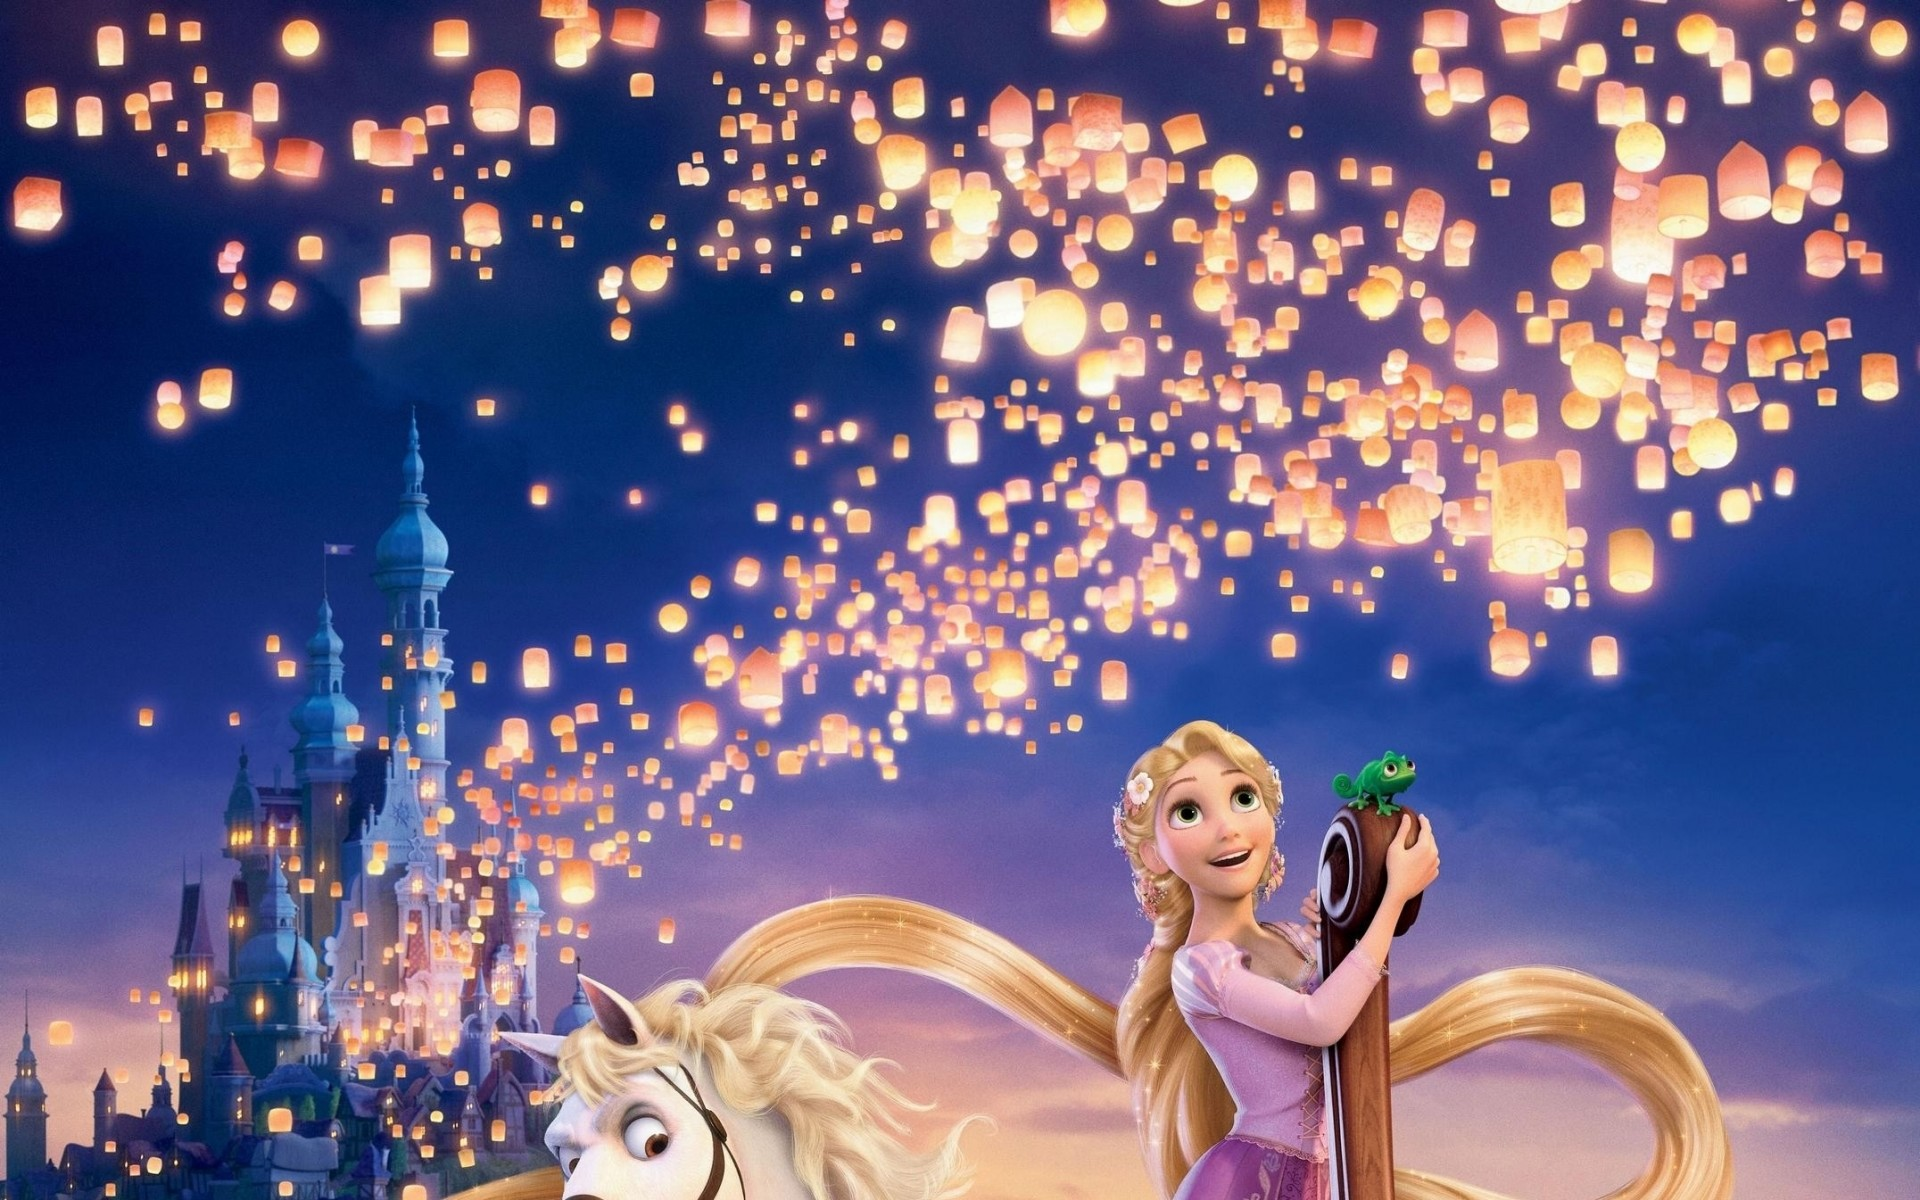 Disney Tangled Wallpapers For Desktop Laptop And Mobiles Here You With 35 Amazing Sky Lanterns Wallpaper